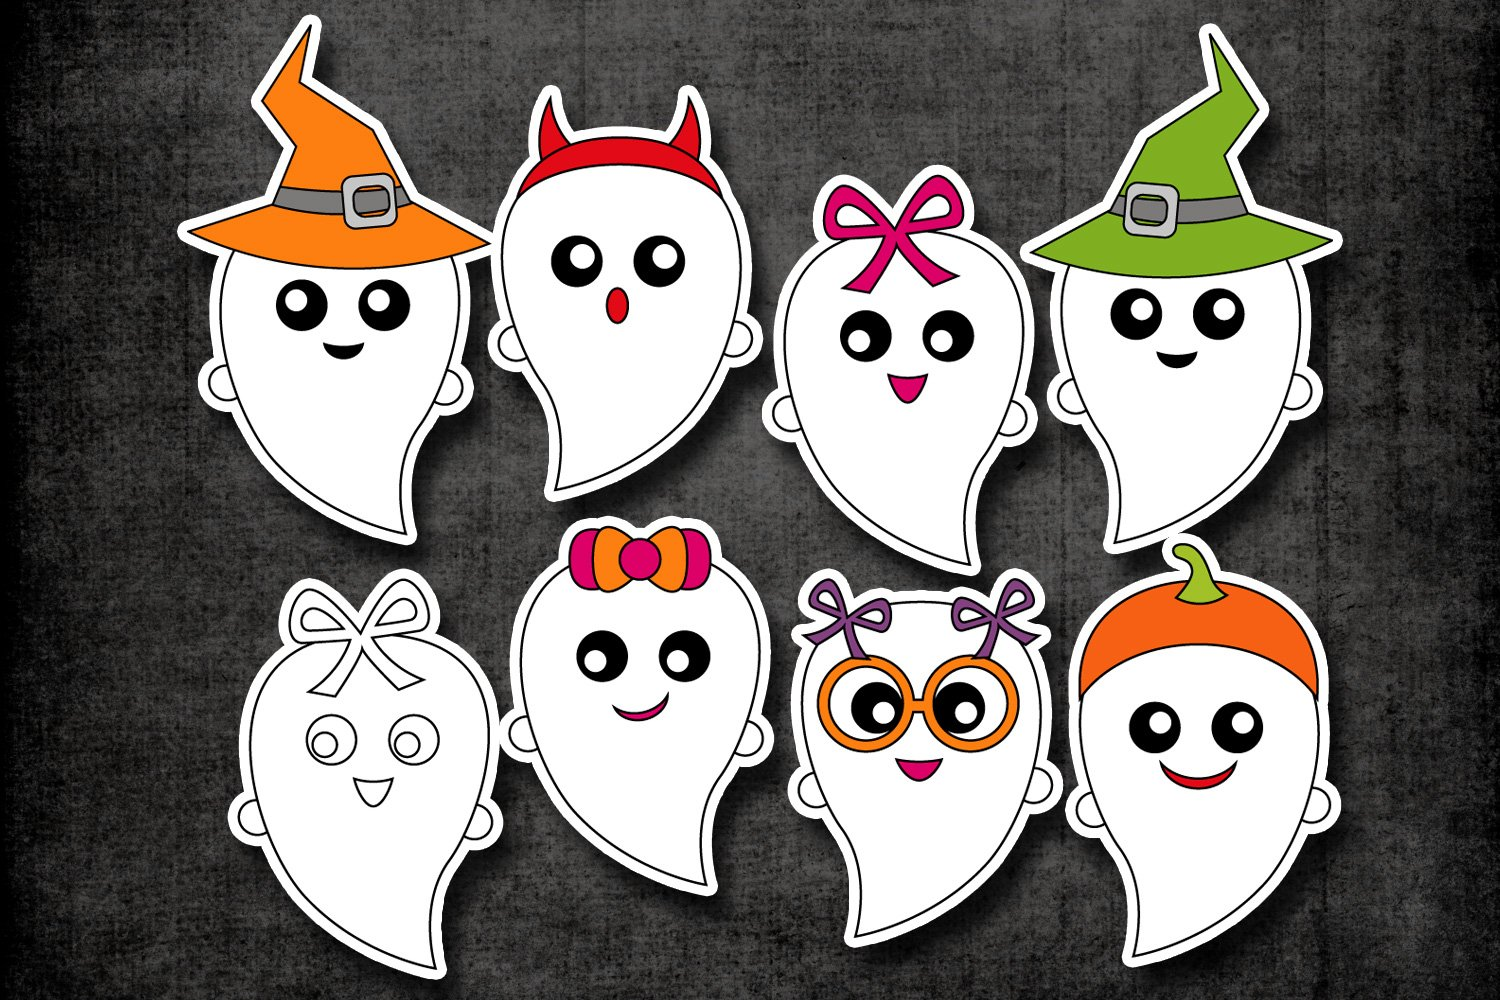 Halloween ghost clipart graphic illustrations (105954 ... (1500 x 1000 Pixel)